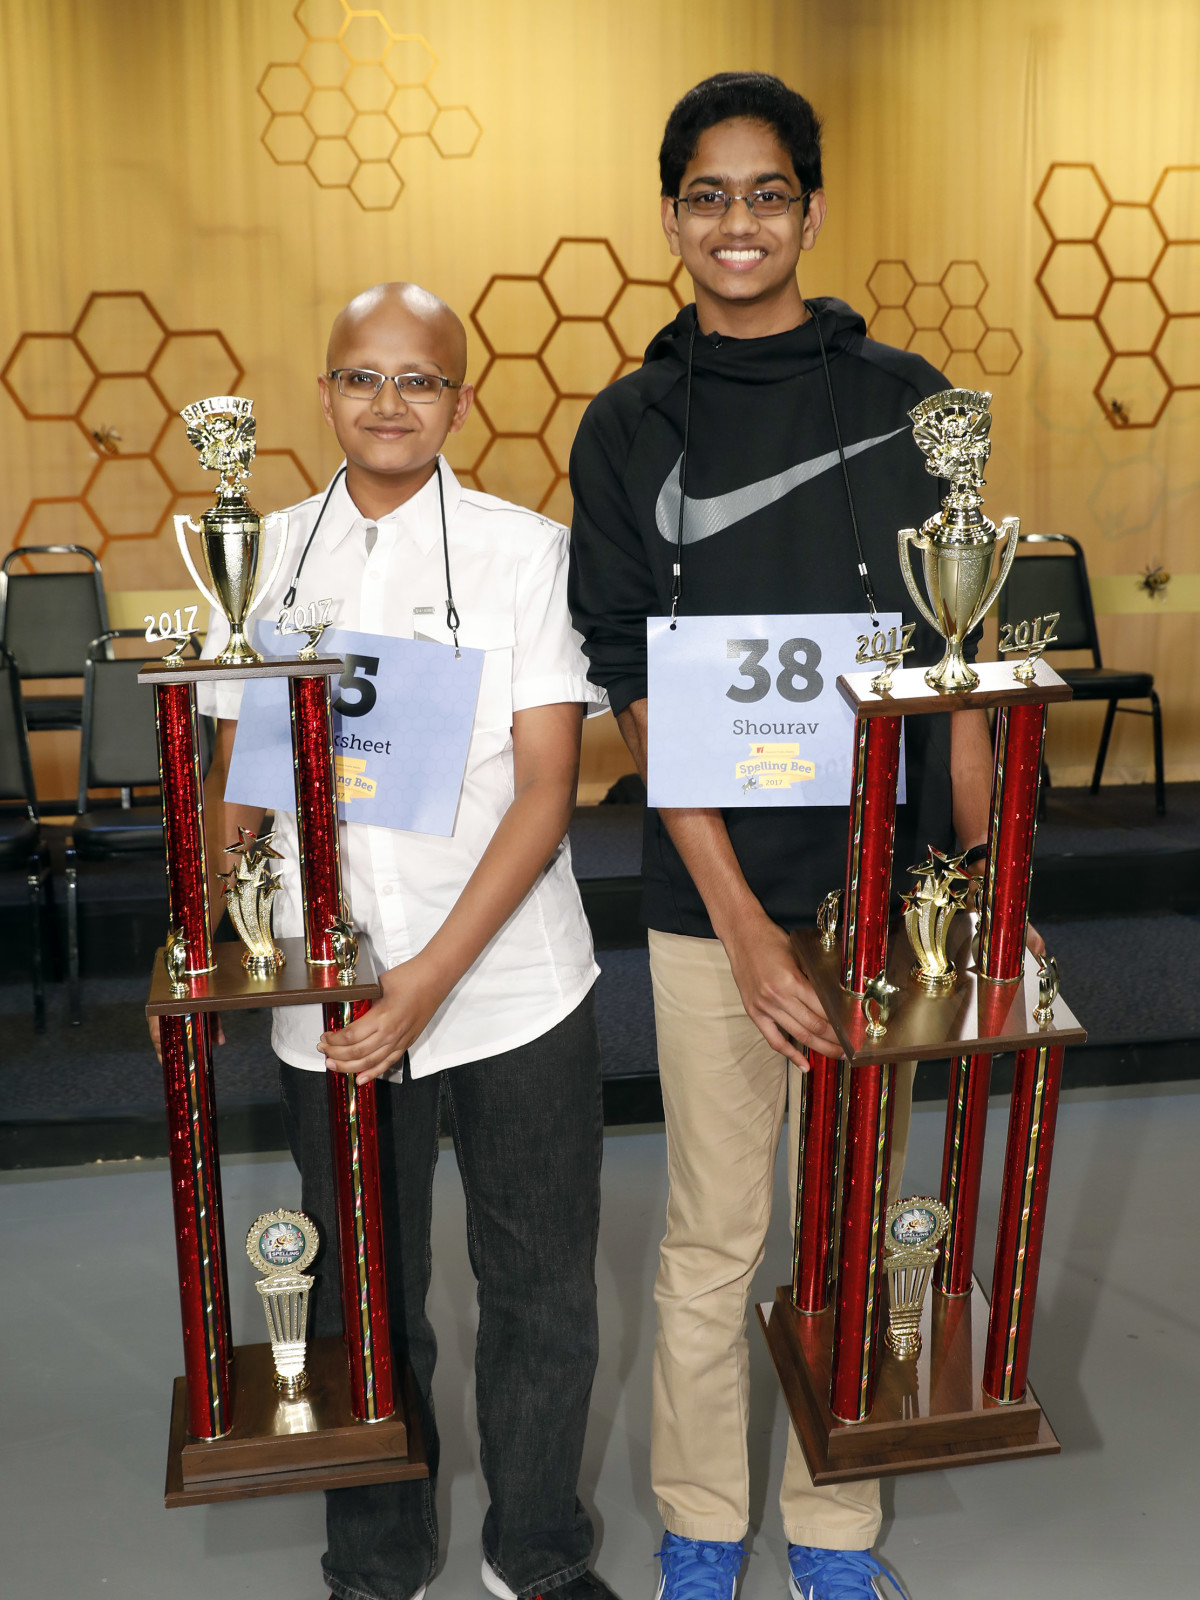 Houston Public Media Spelling Bee runnerup Raksheet Kota and winner Shourav Dasari